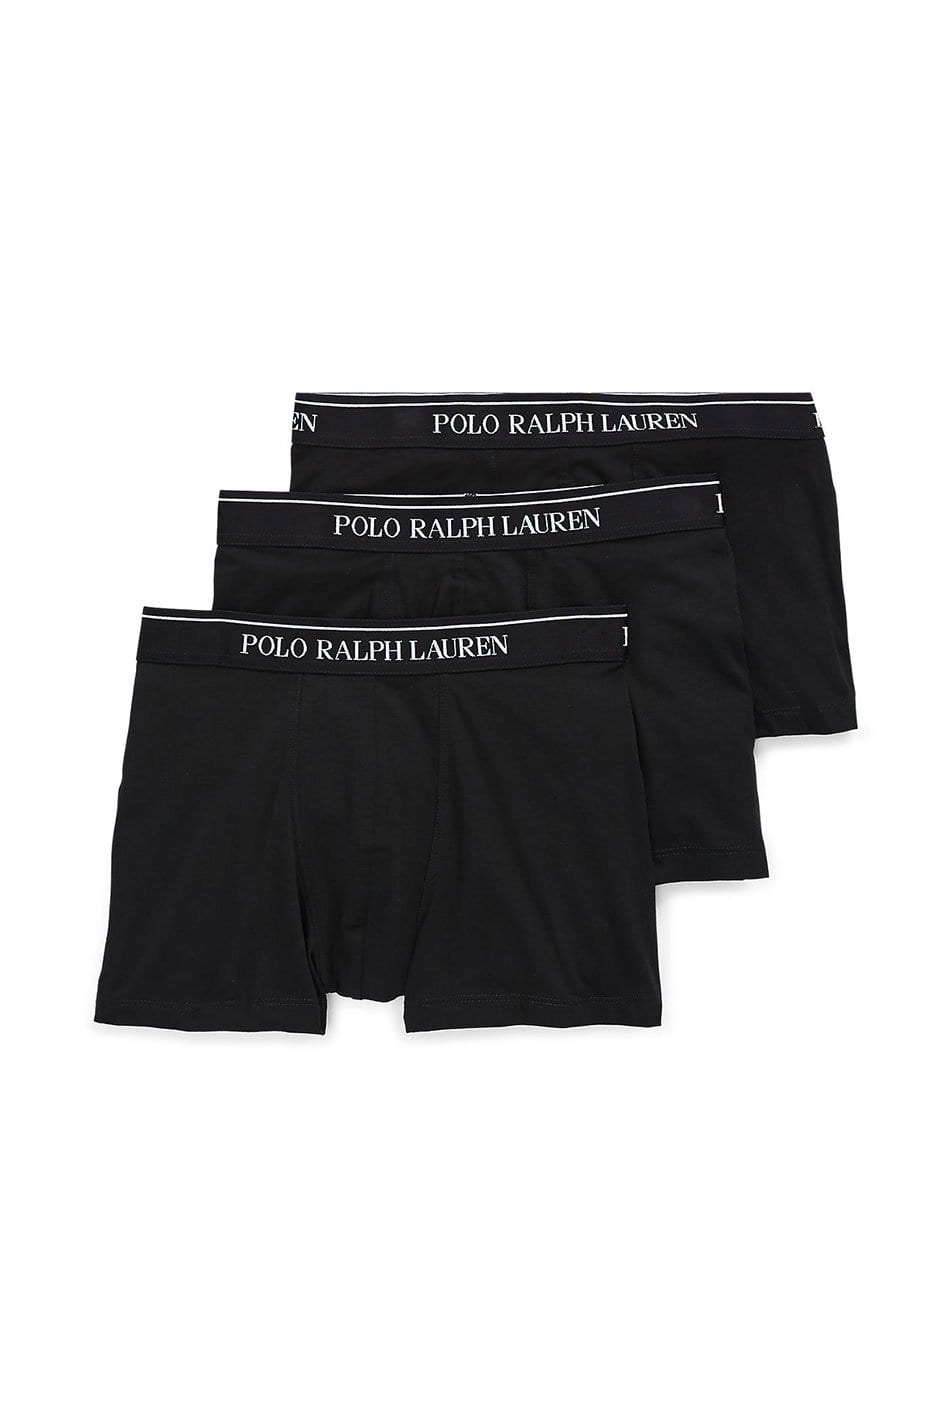 Polo Ralph Lauren 3 Pack Classic Trunk